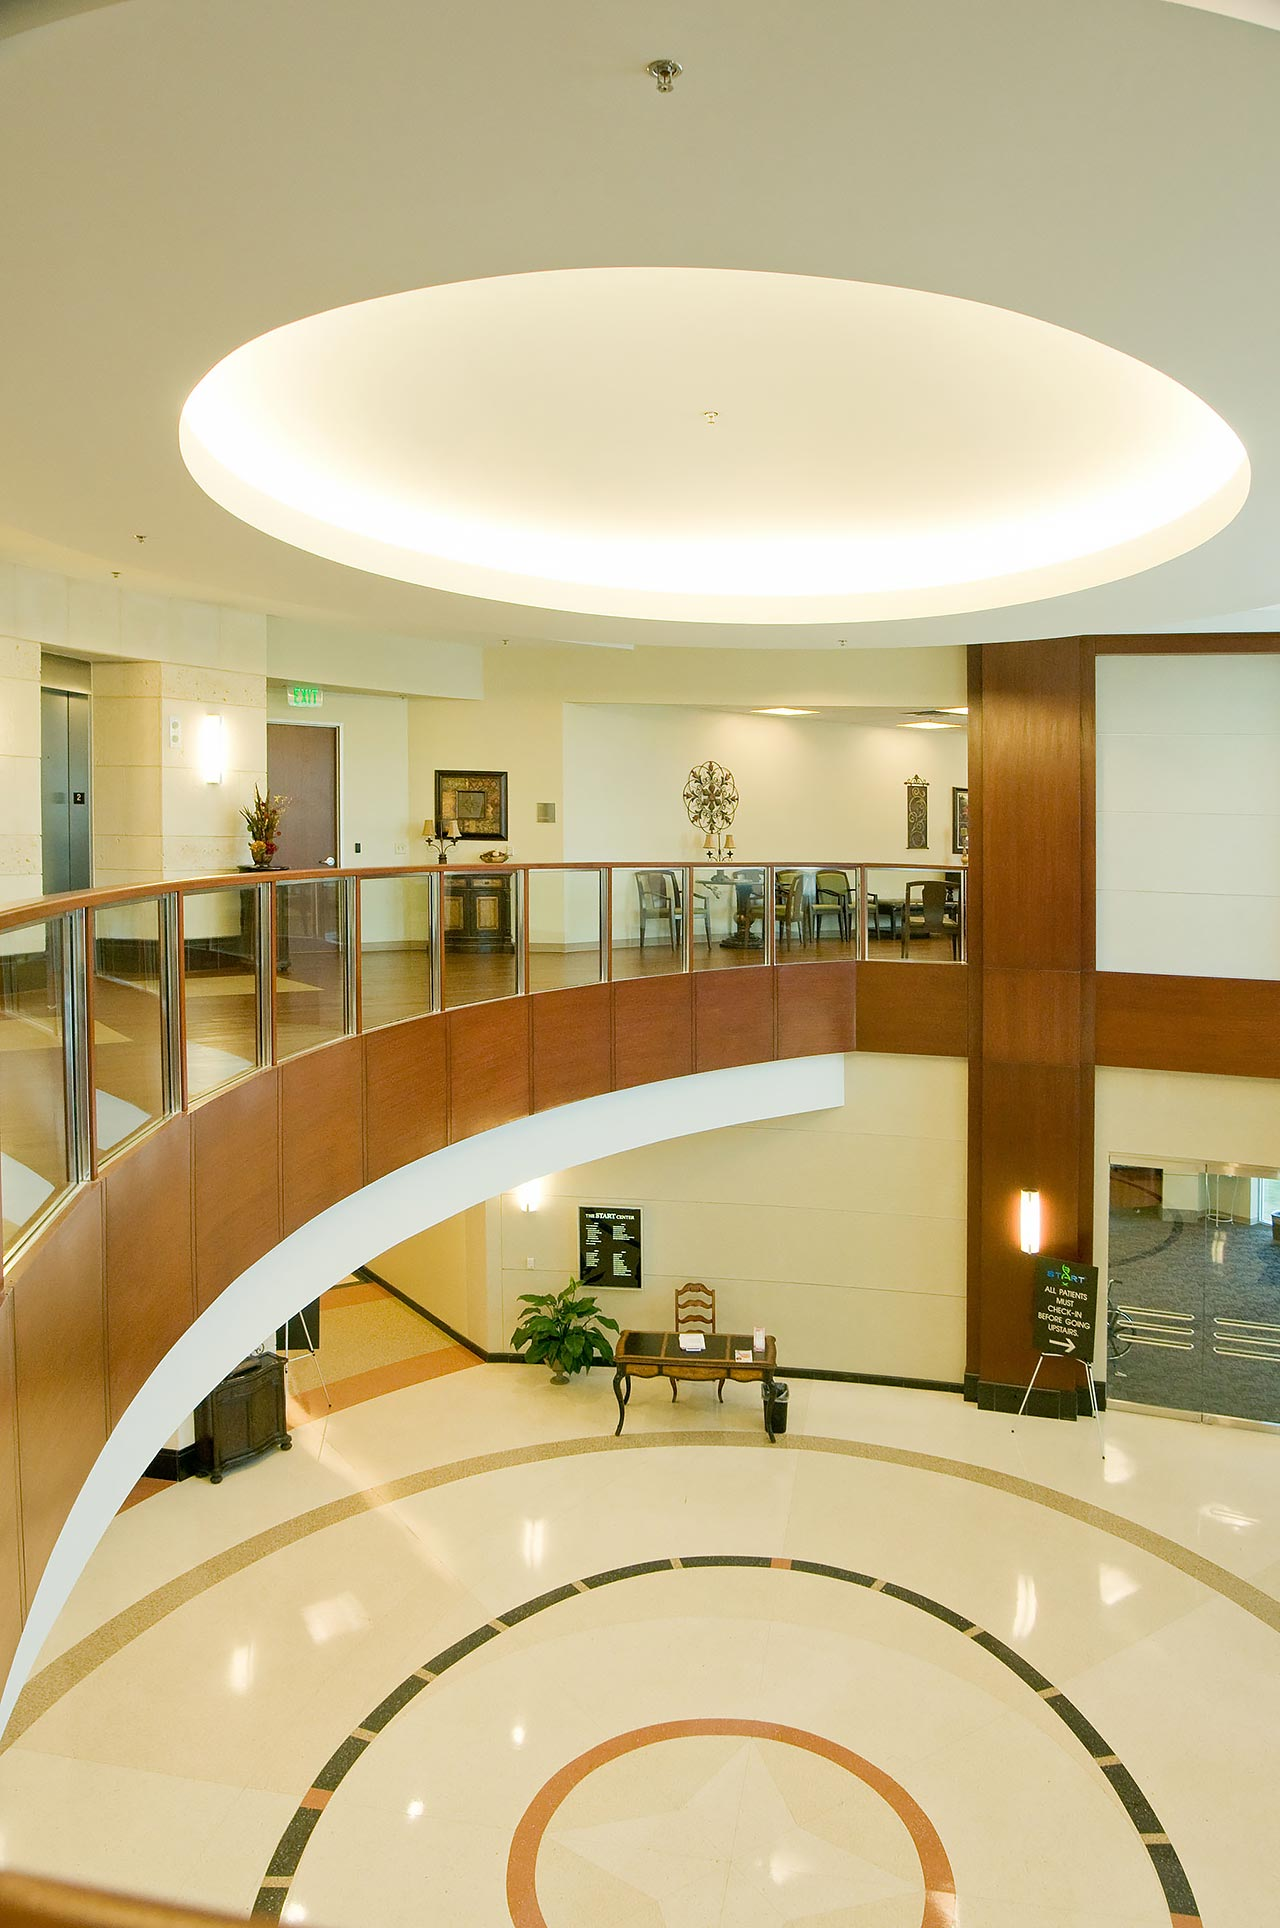 South Texas Oncology & Hematology - Metropolitan Contracting